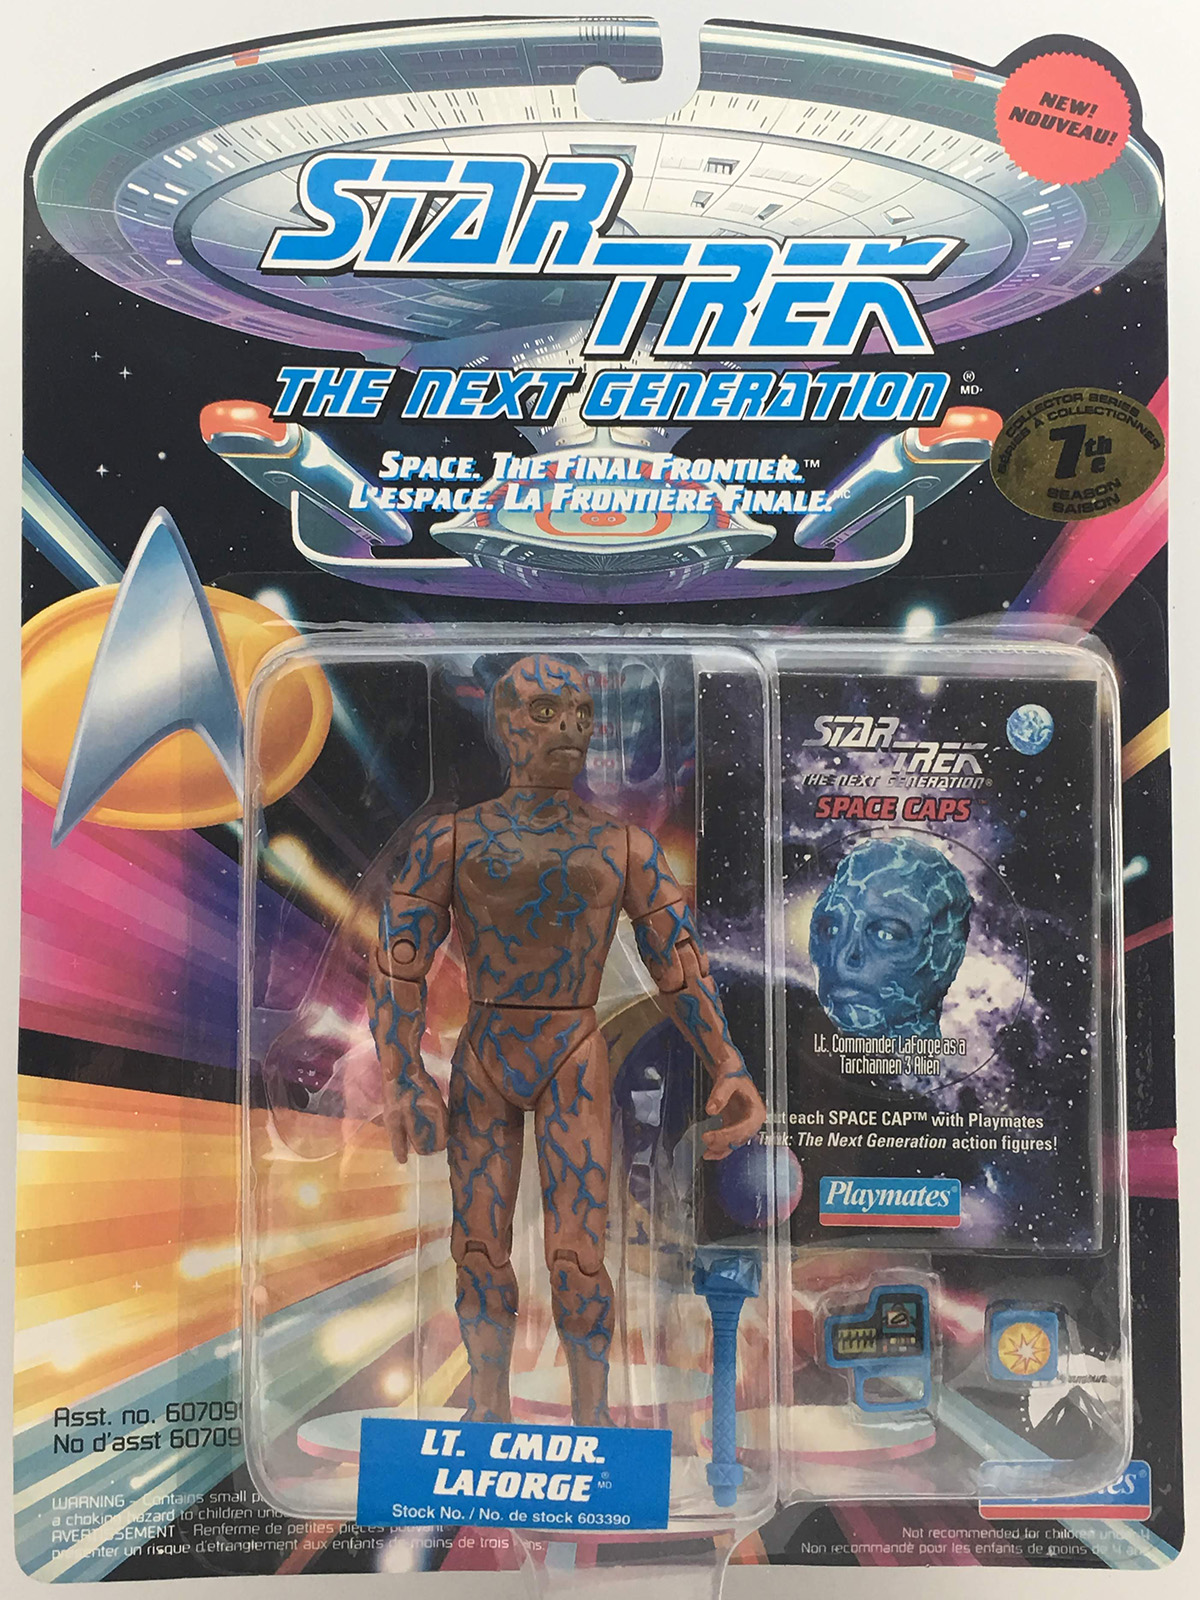 LaForge as Tarchannen III Alien